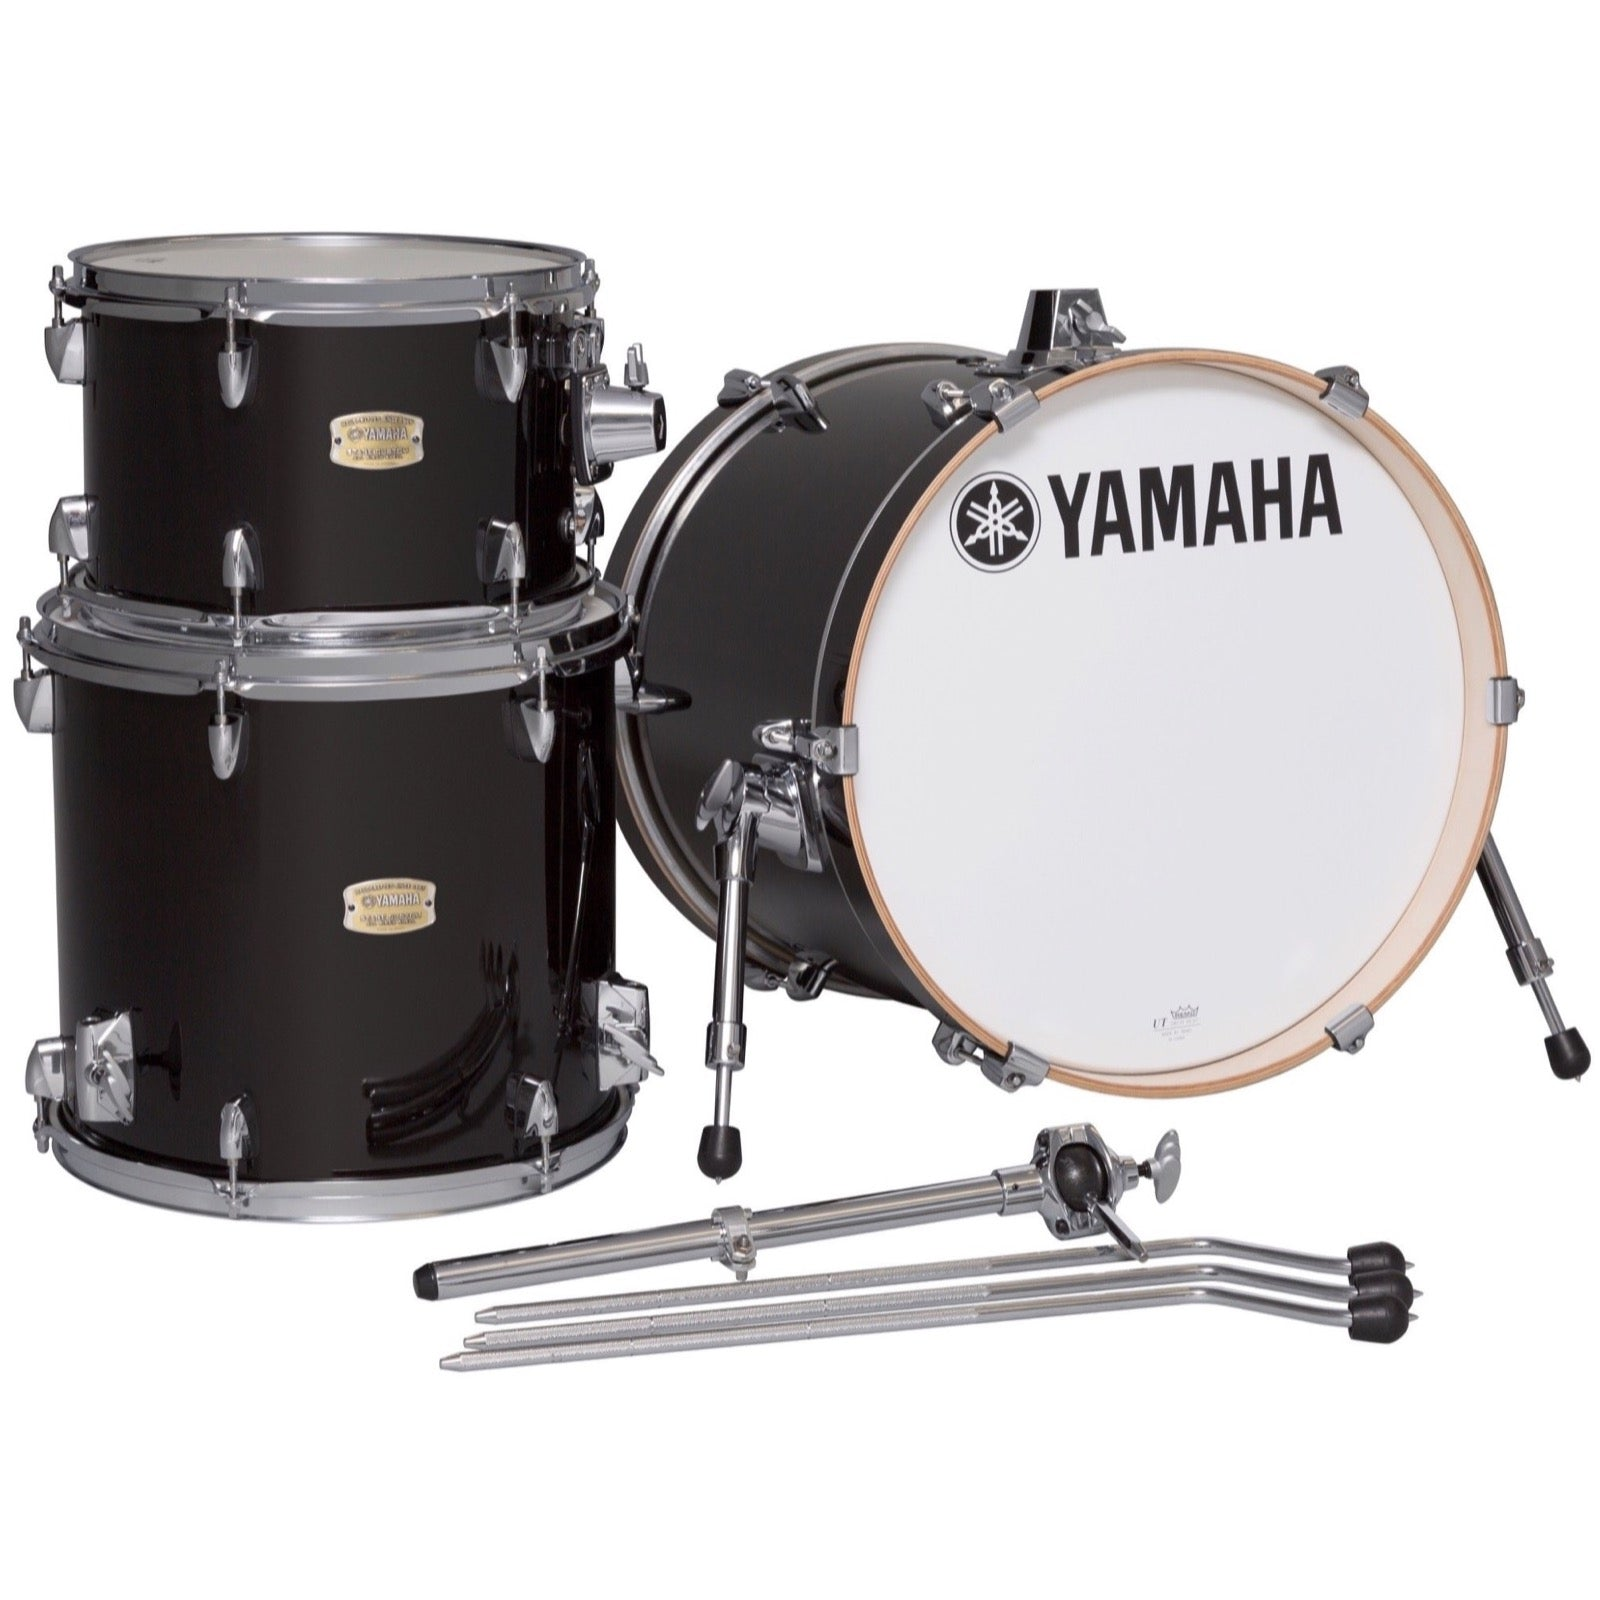 Yamaha SBP8F3 Stage Custom Bop Drum Shell Kit, 3-Piece, Raven Black